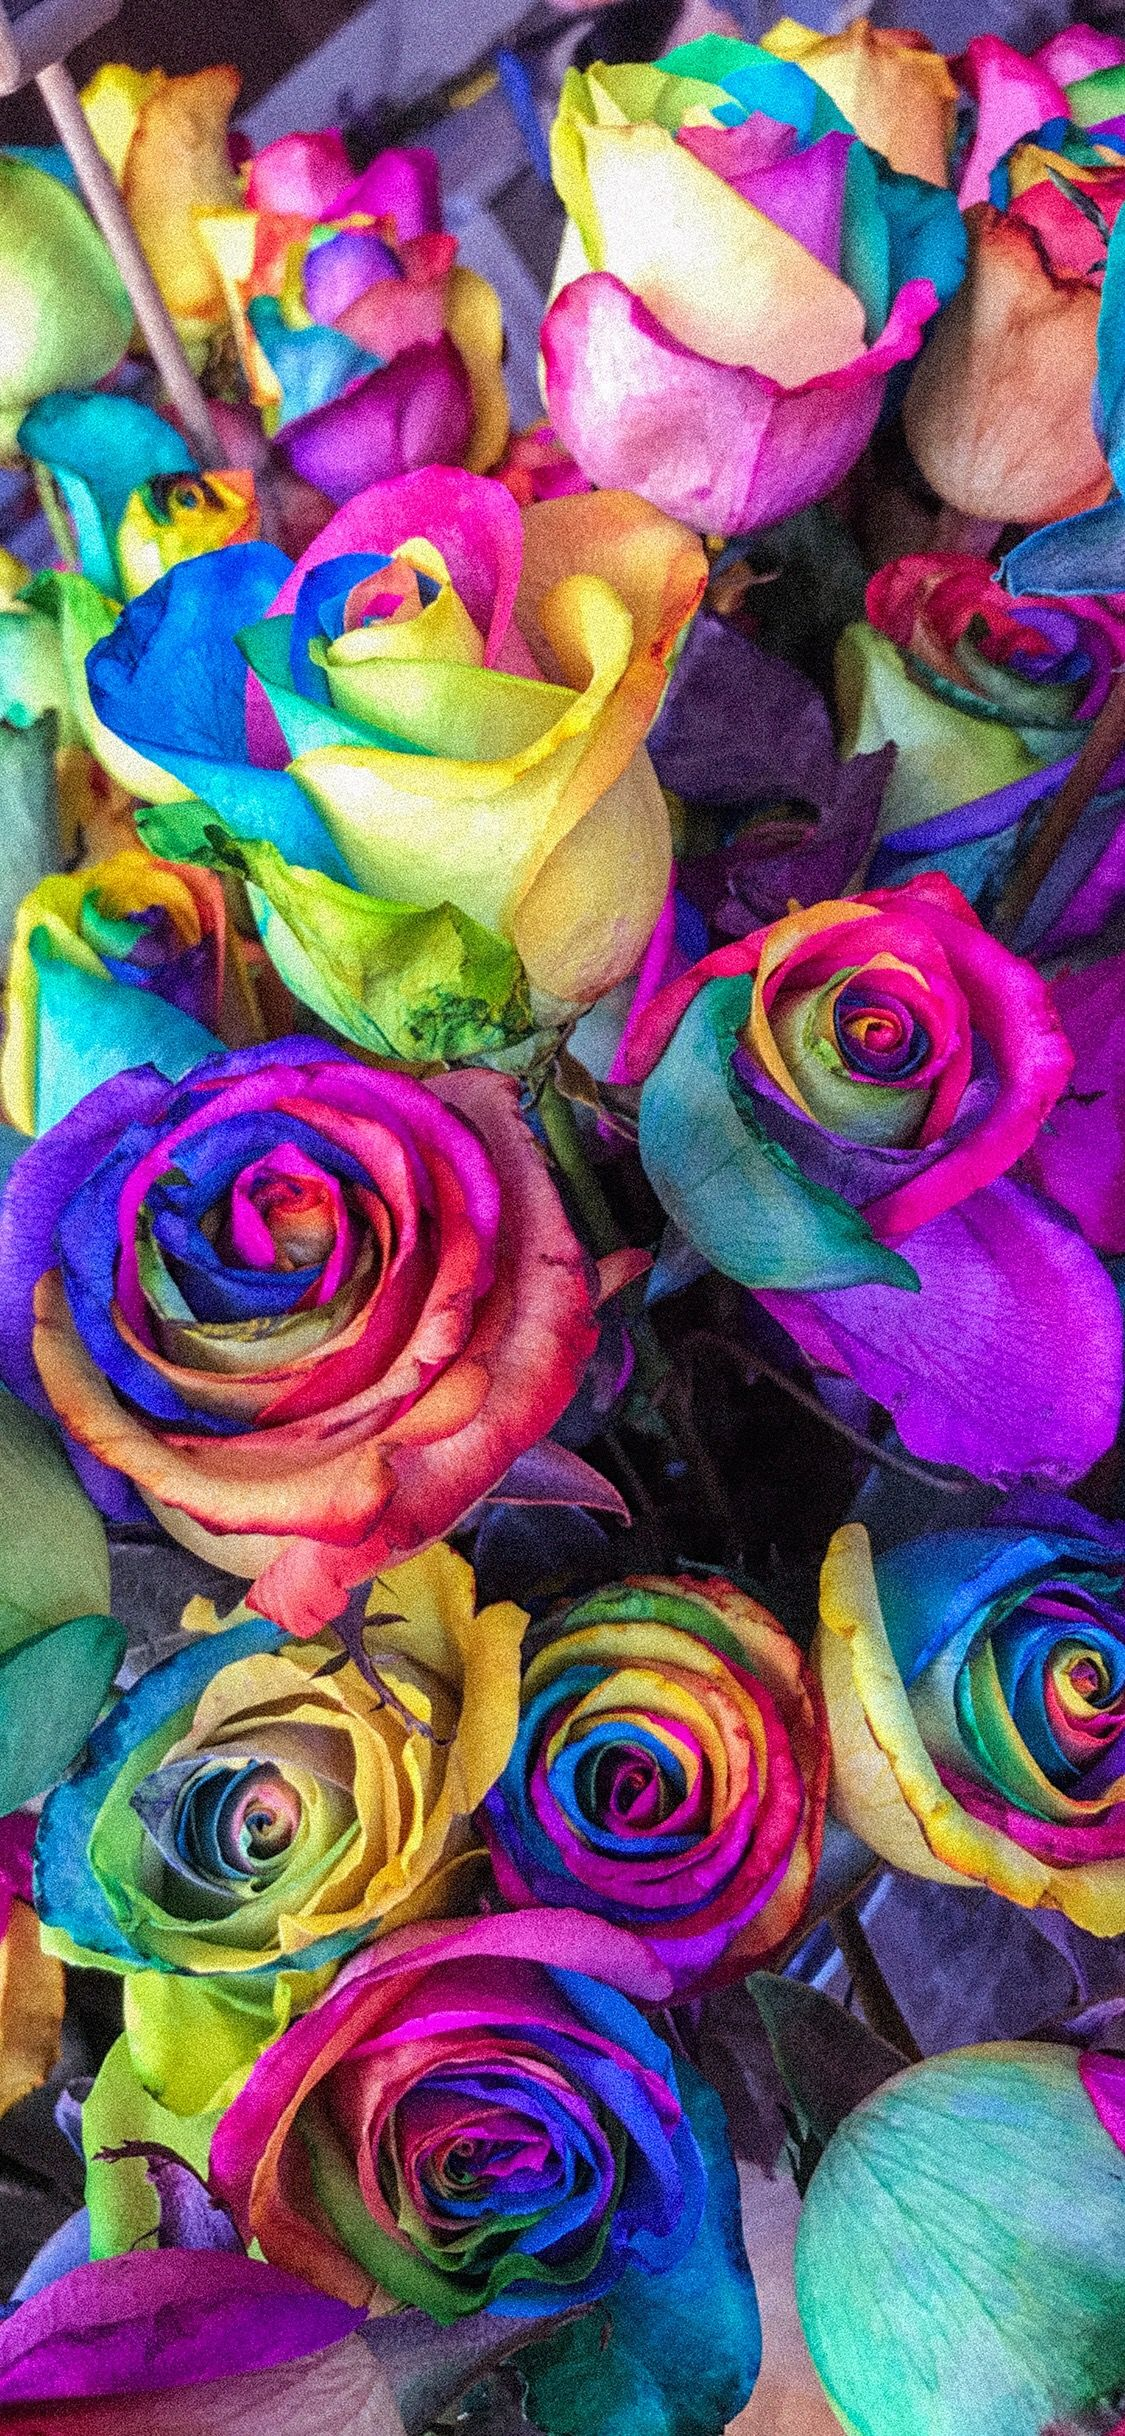 Pin By Lexi Jean On Iphone Wallpaper With Images Rainbow Roses